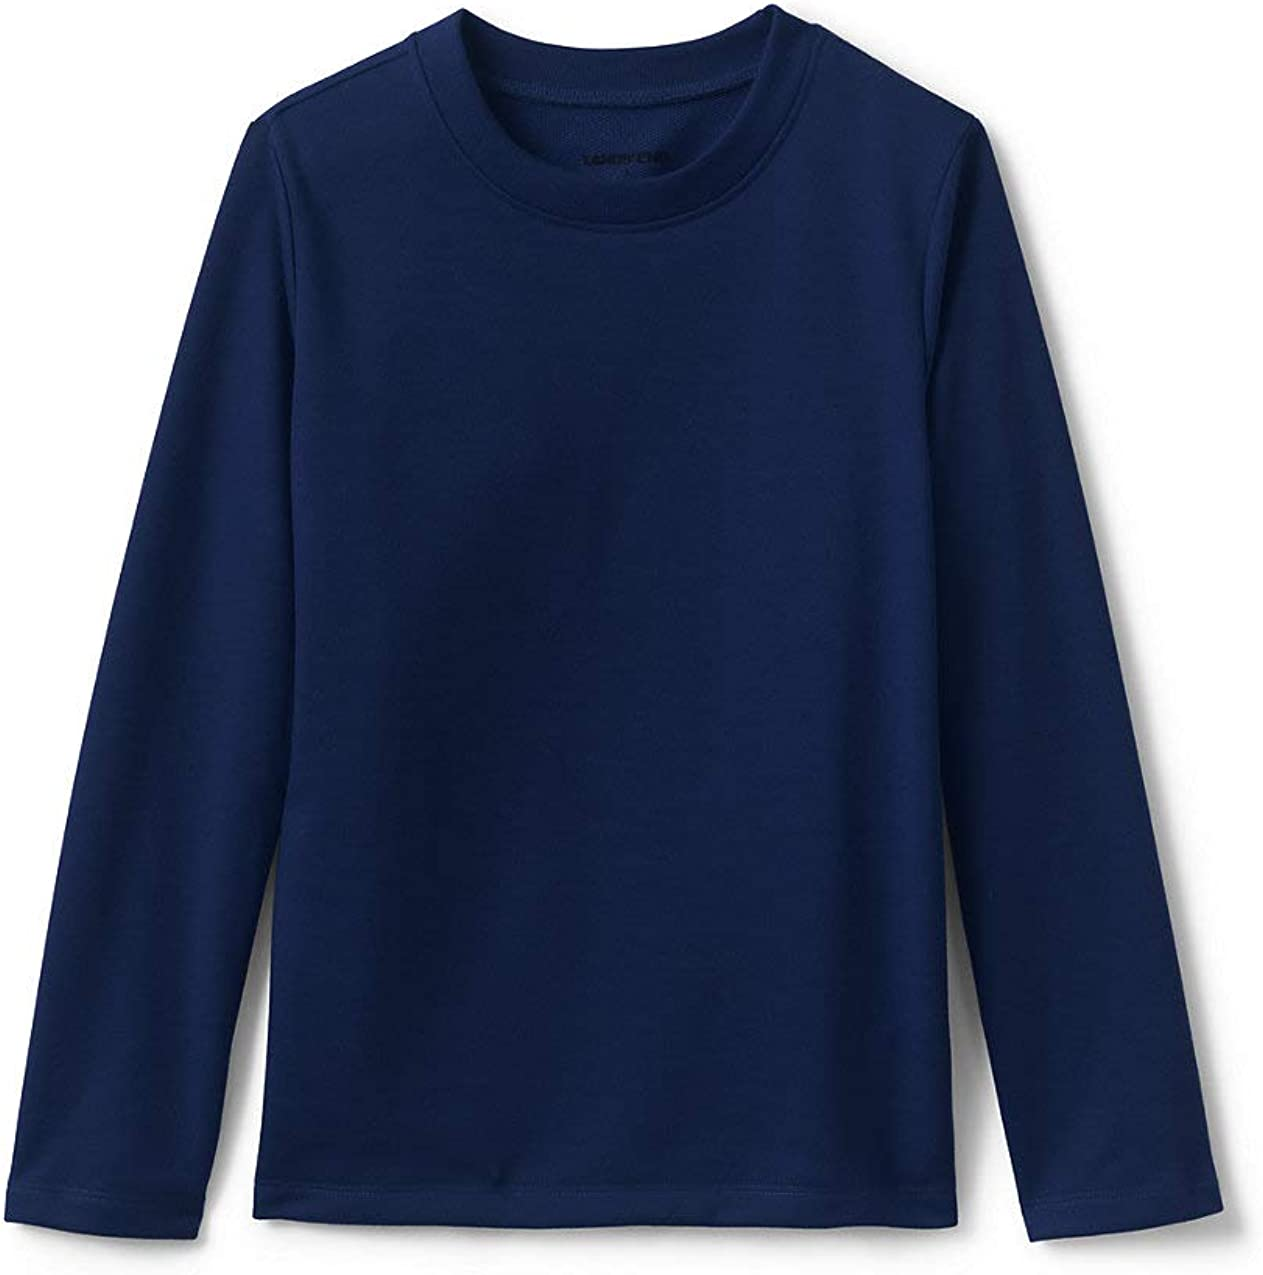 Lands' End Kids French Terry Sleep Top